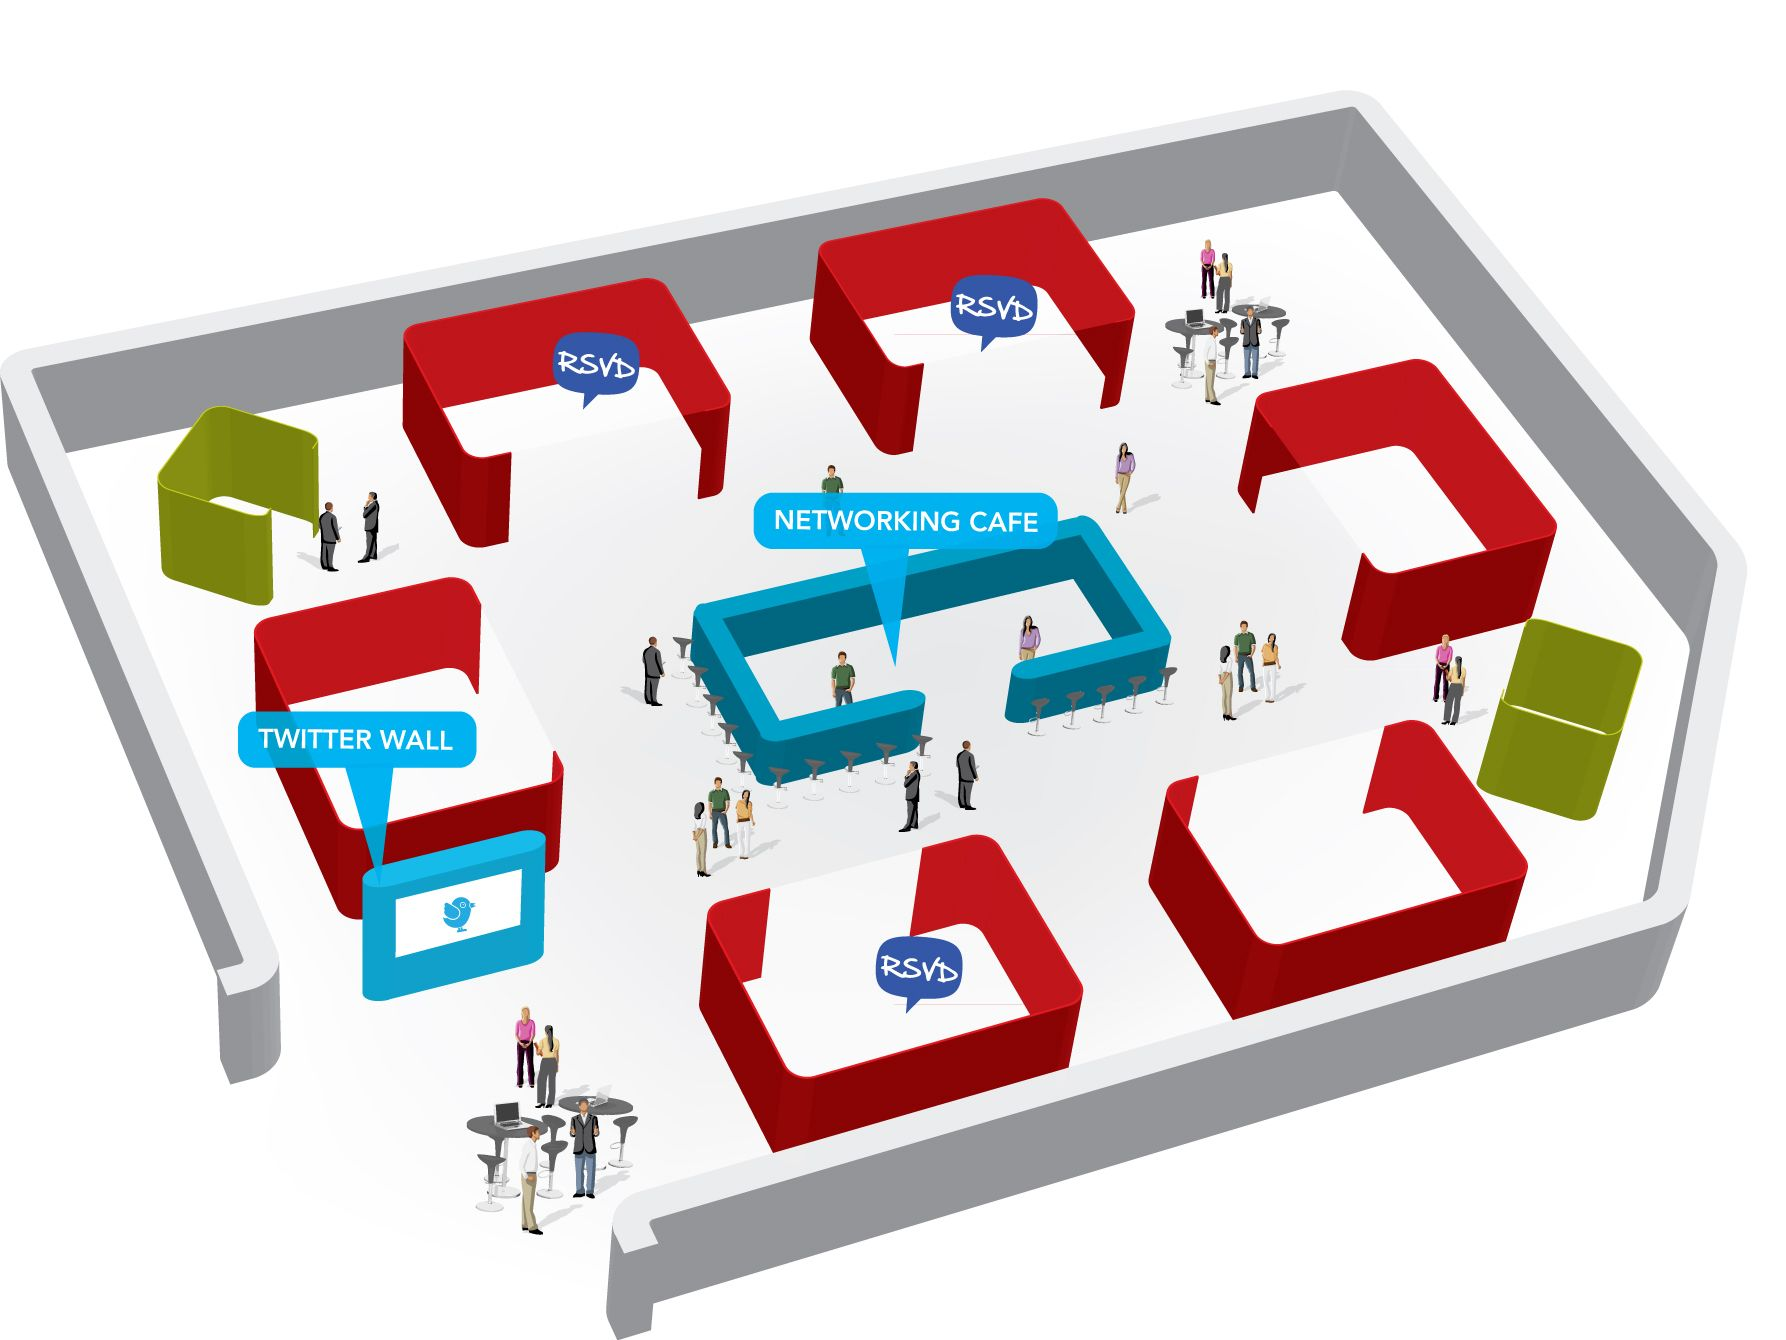 Pricing Mobile Data Bss 2014 Exhibition Floor Plan Exhibition Plan Floor Plan Layout Exhibition